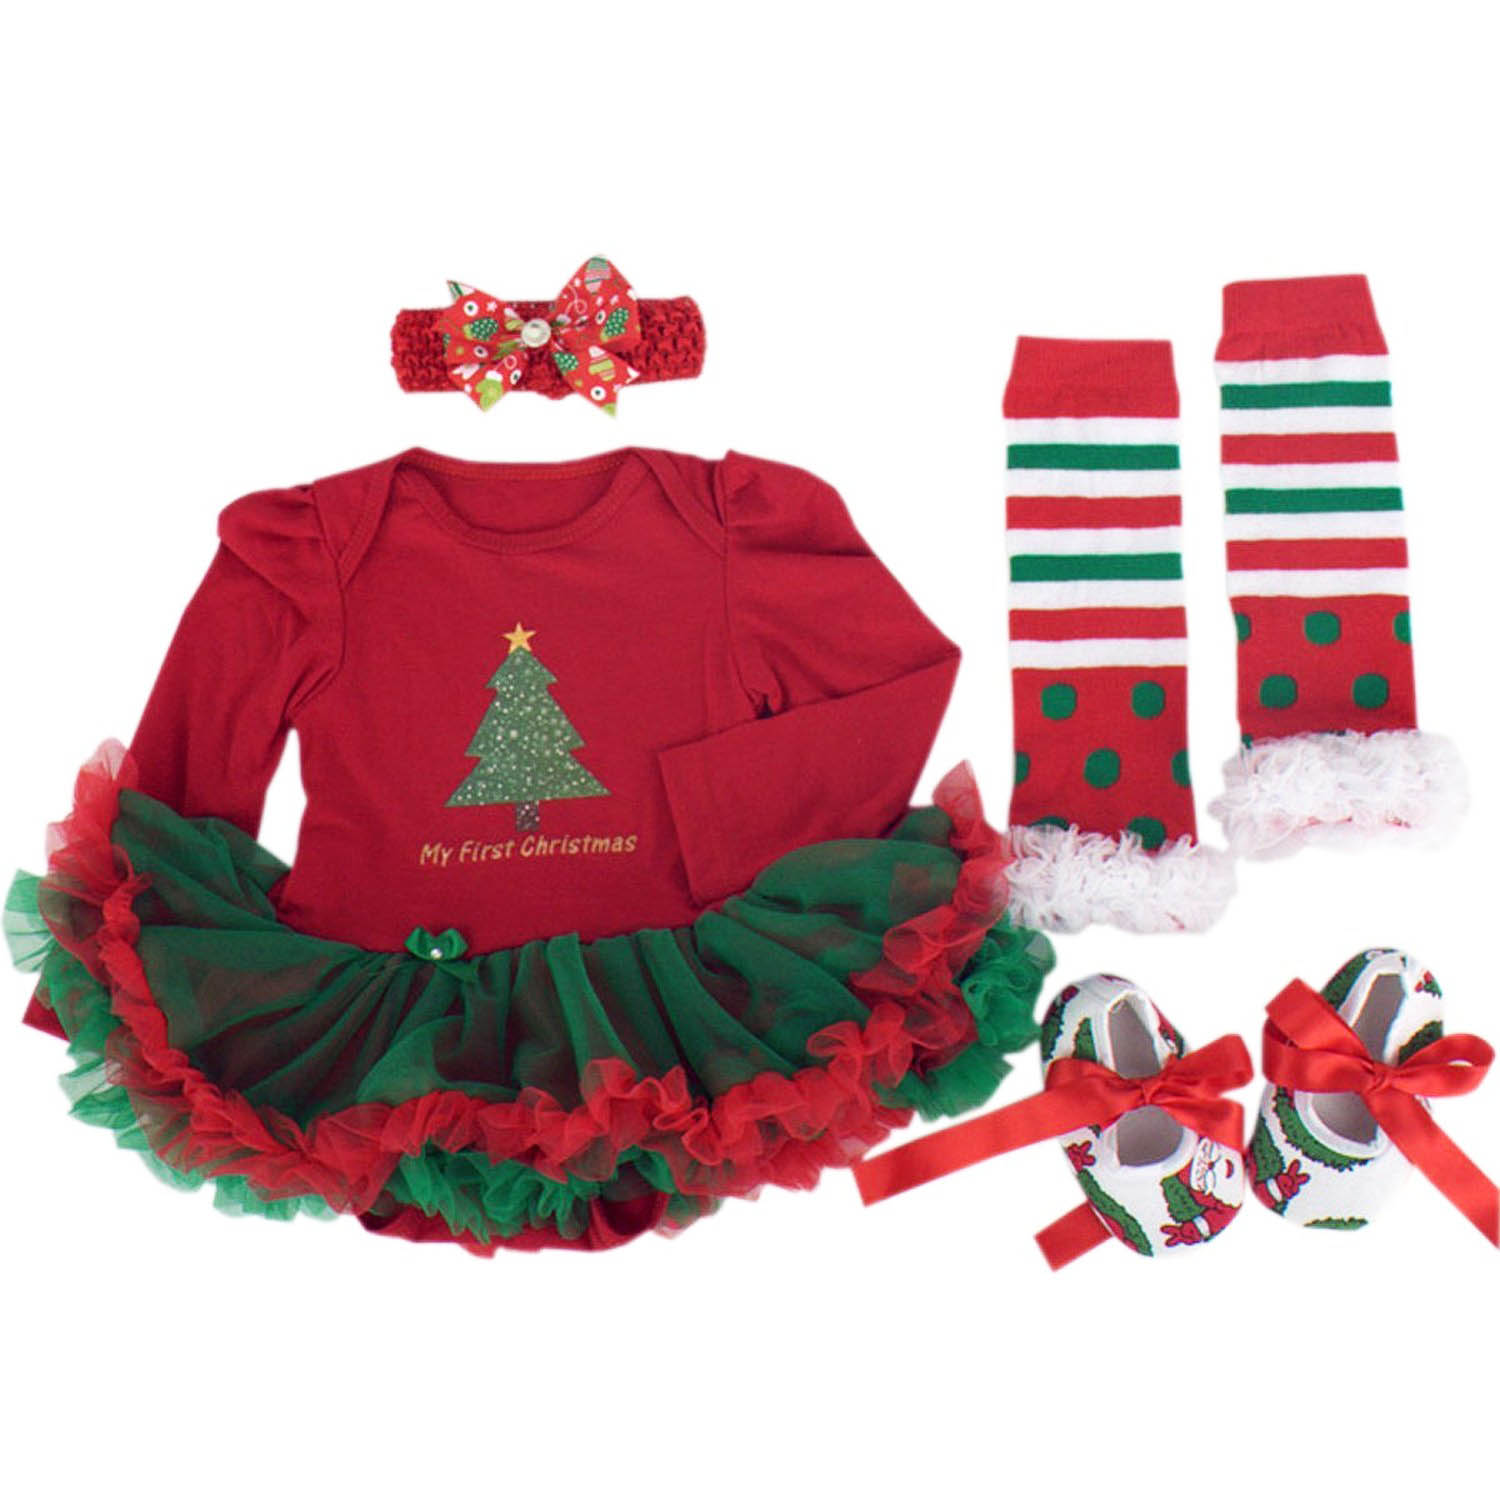 1d28342f0 BabyPreg Baby Girls My First Christmas, Baby Santa Christmas Costume ...